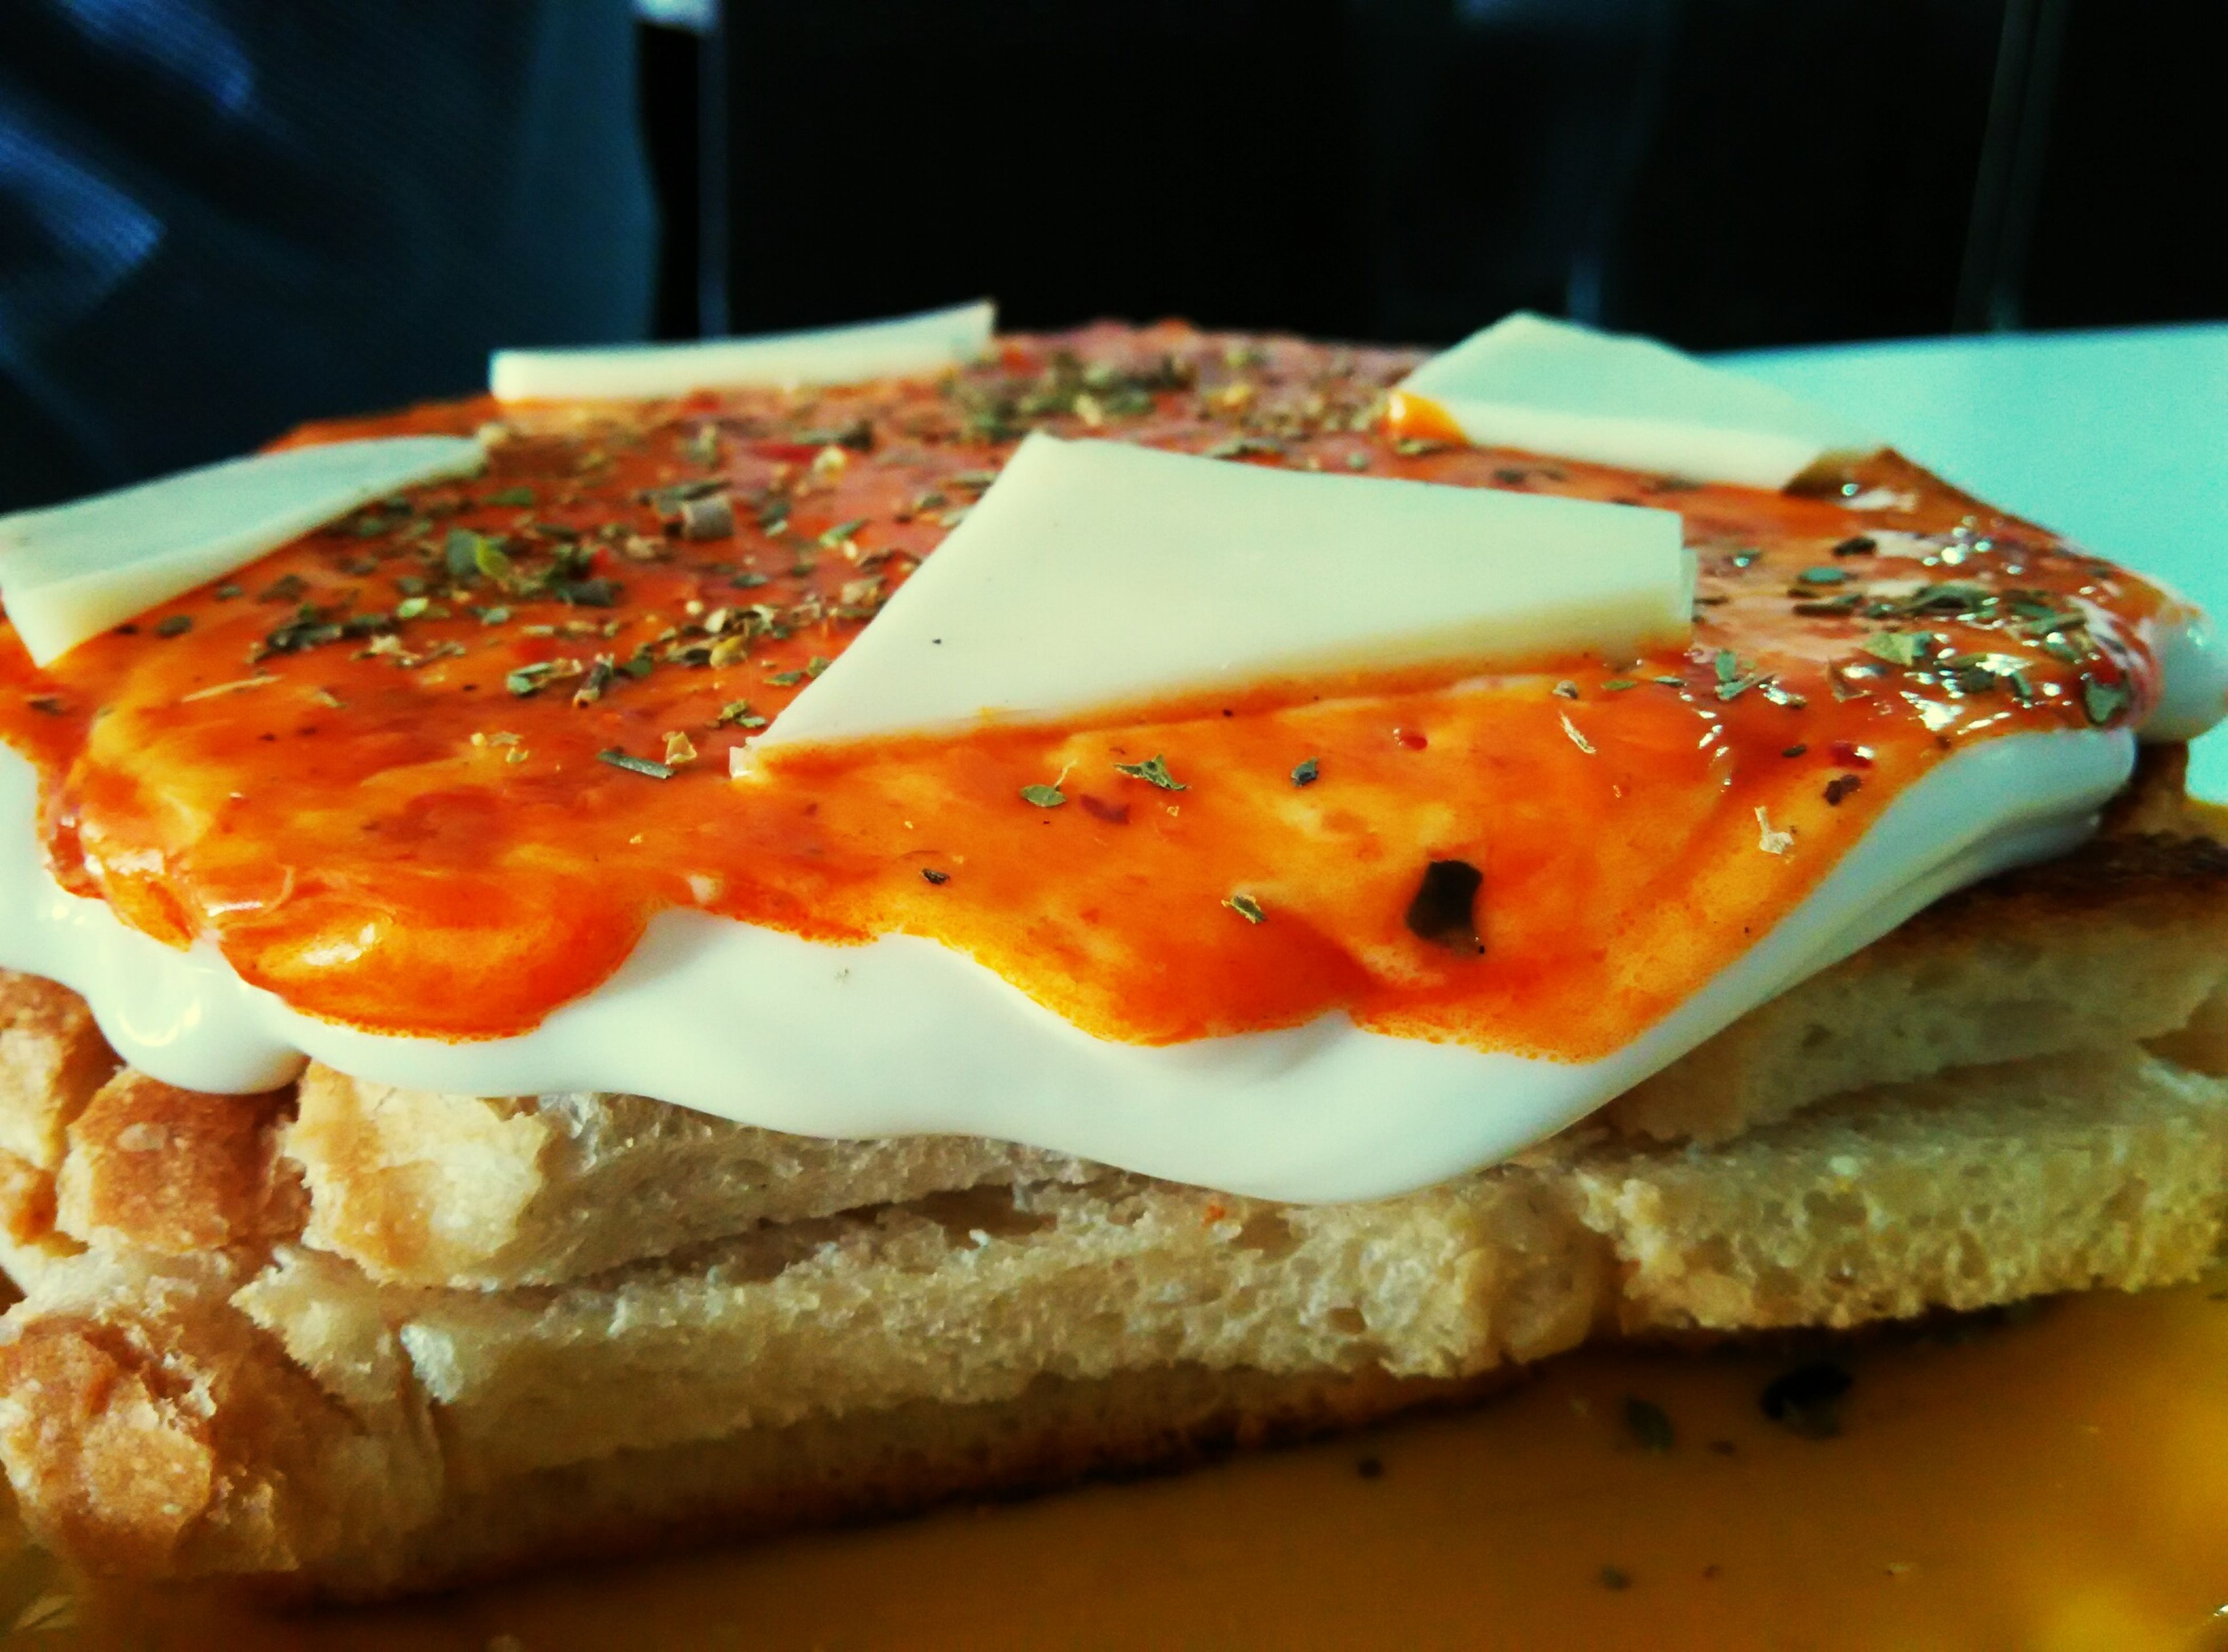 Sandwitch pizzatopping Sandwizza Yammy !!